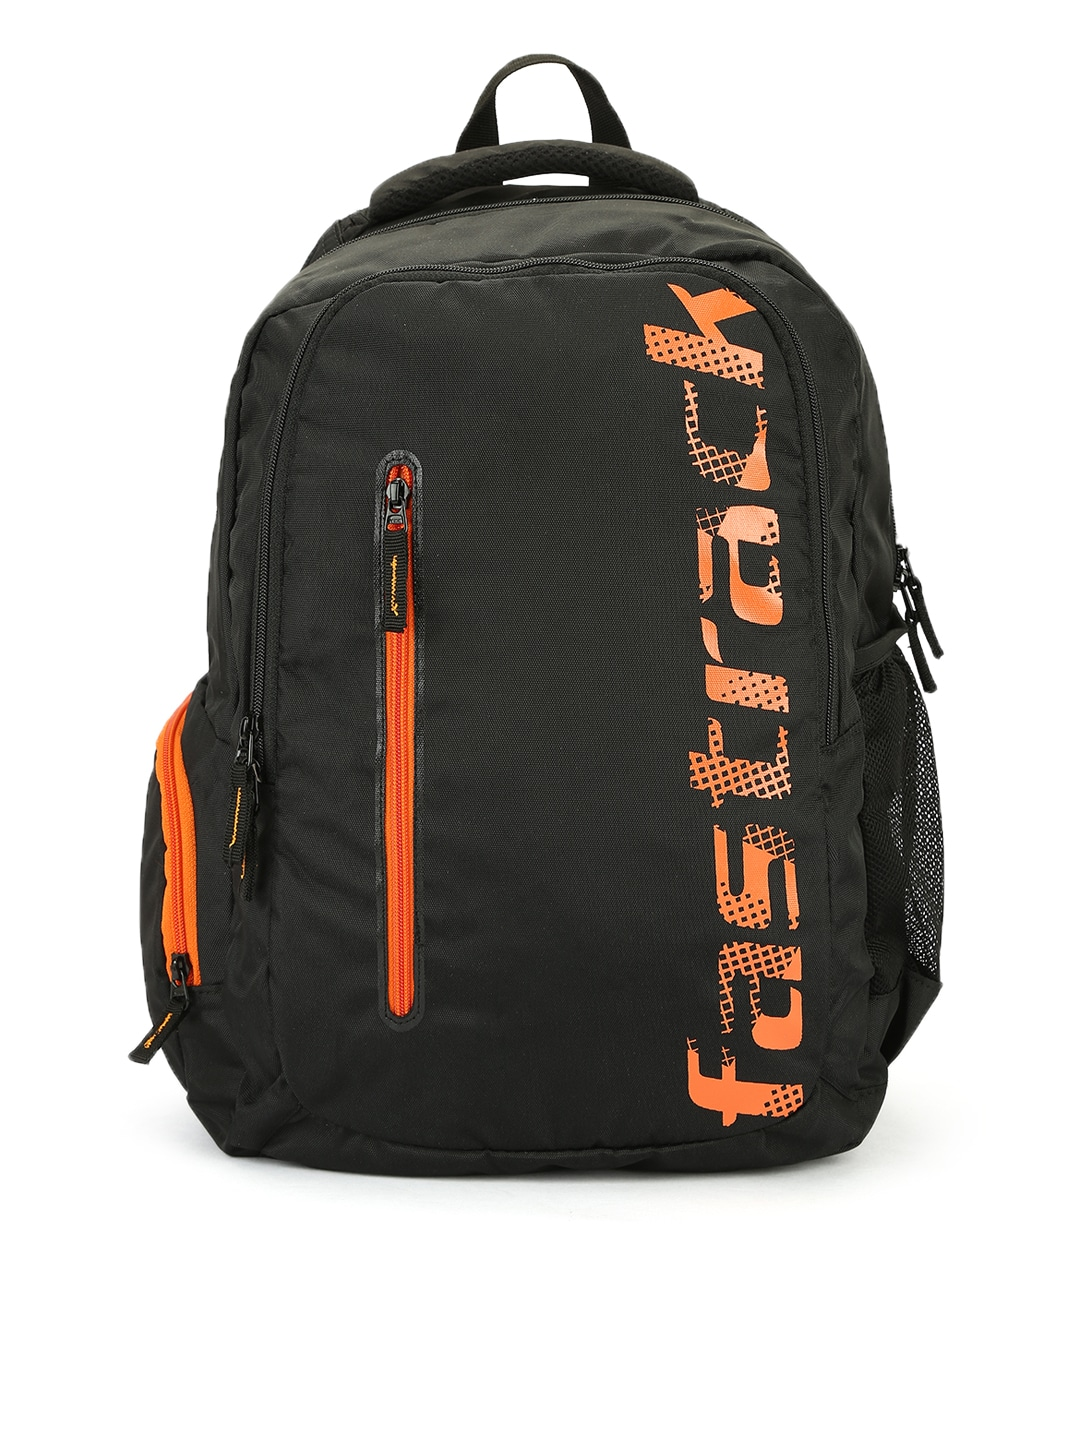 Fastrack - Shop Online from Fastrack Store  e343824fb123e